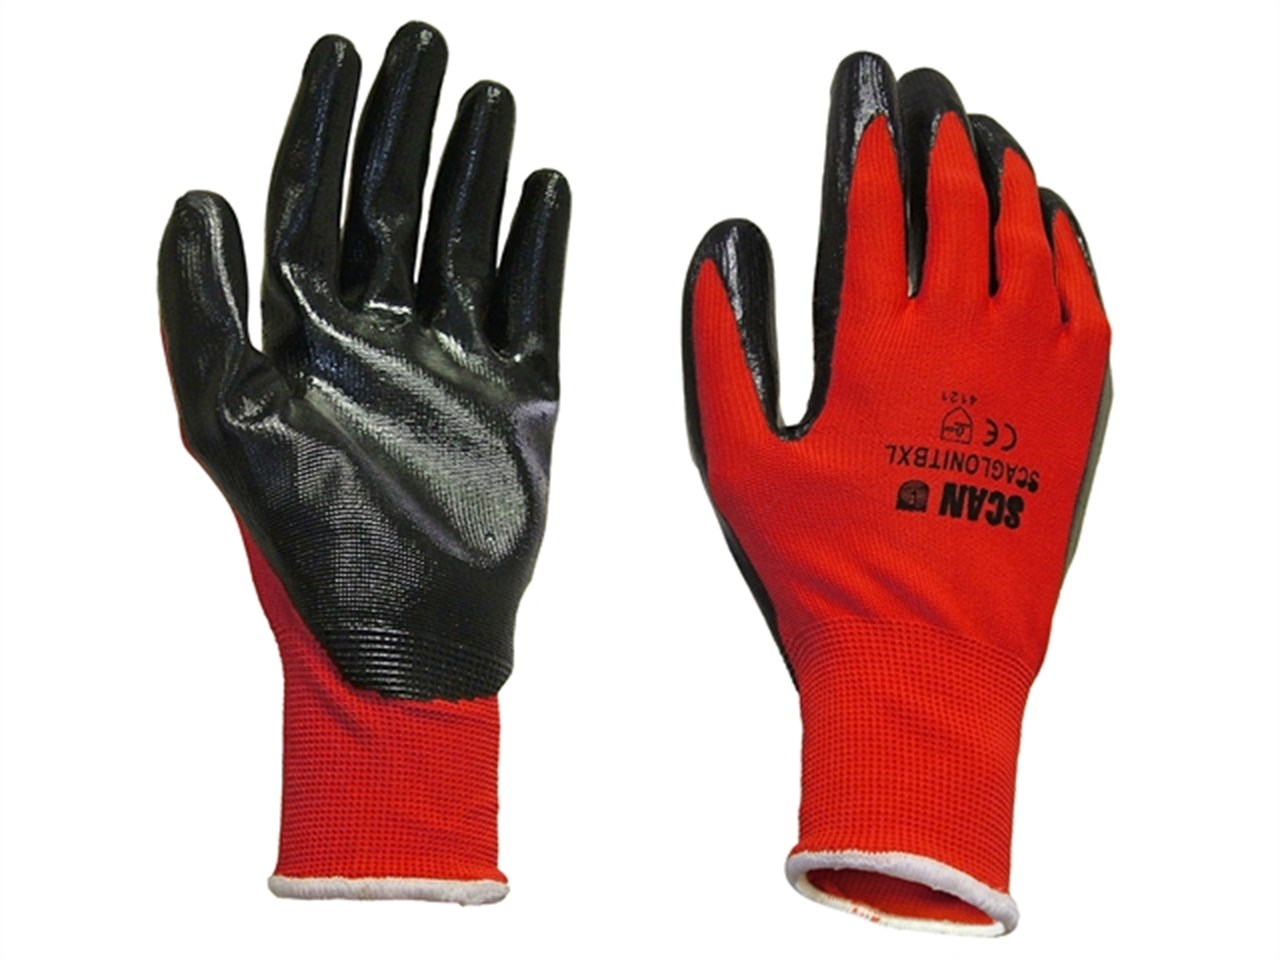 Scan Red Nitrile Gloves 13g Size 9